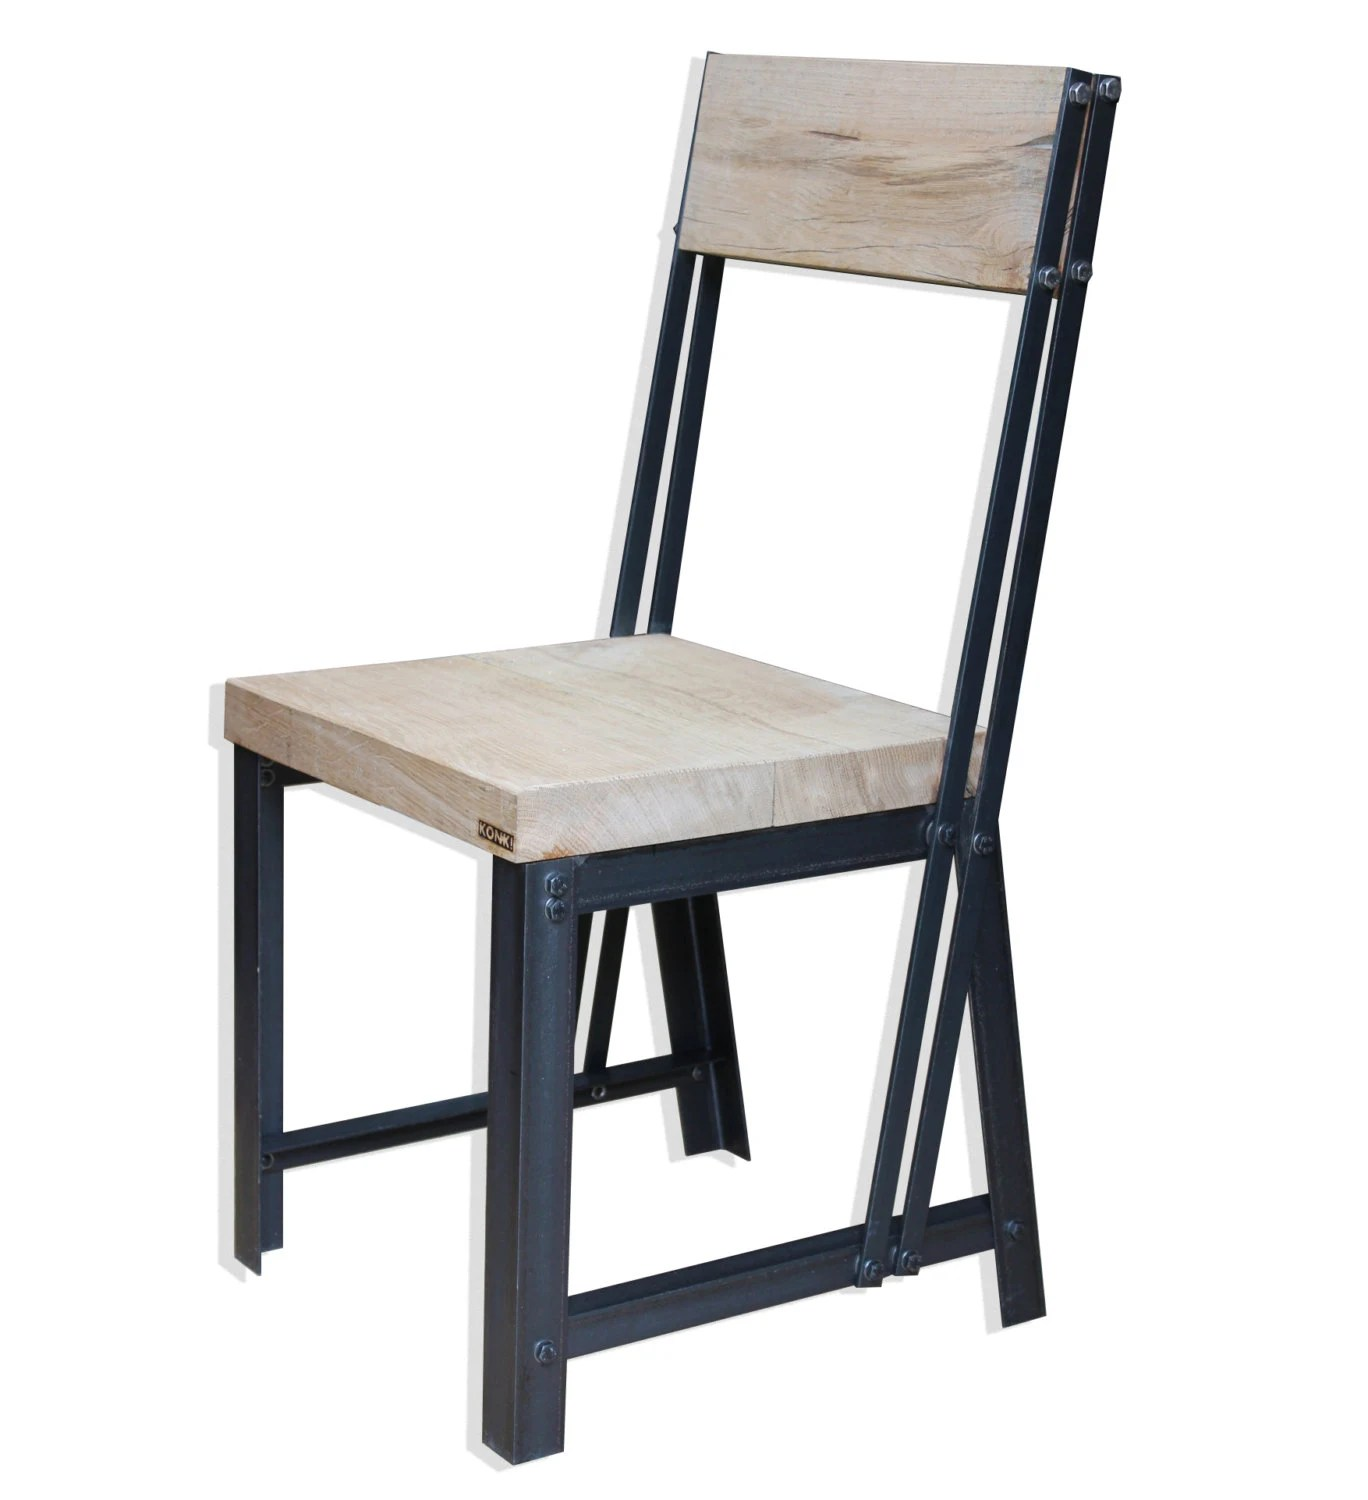 industrial style dining chairs old fashioned room konk oak steel chair